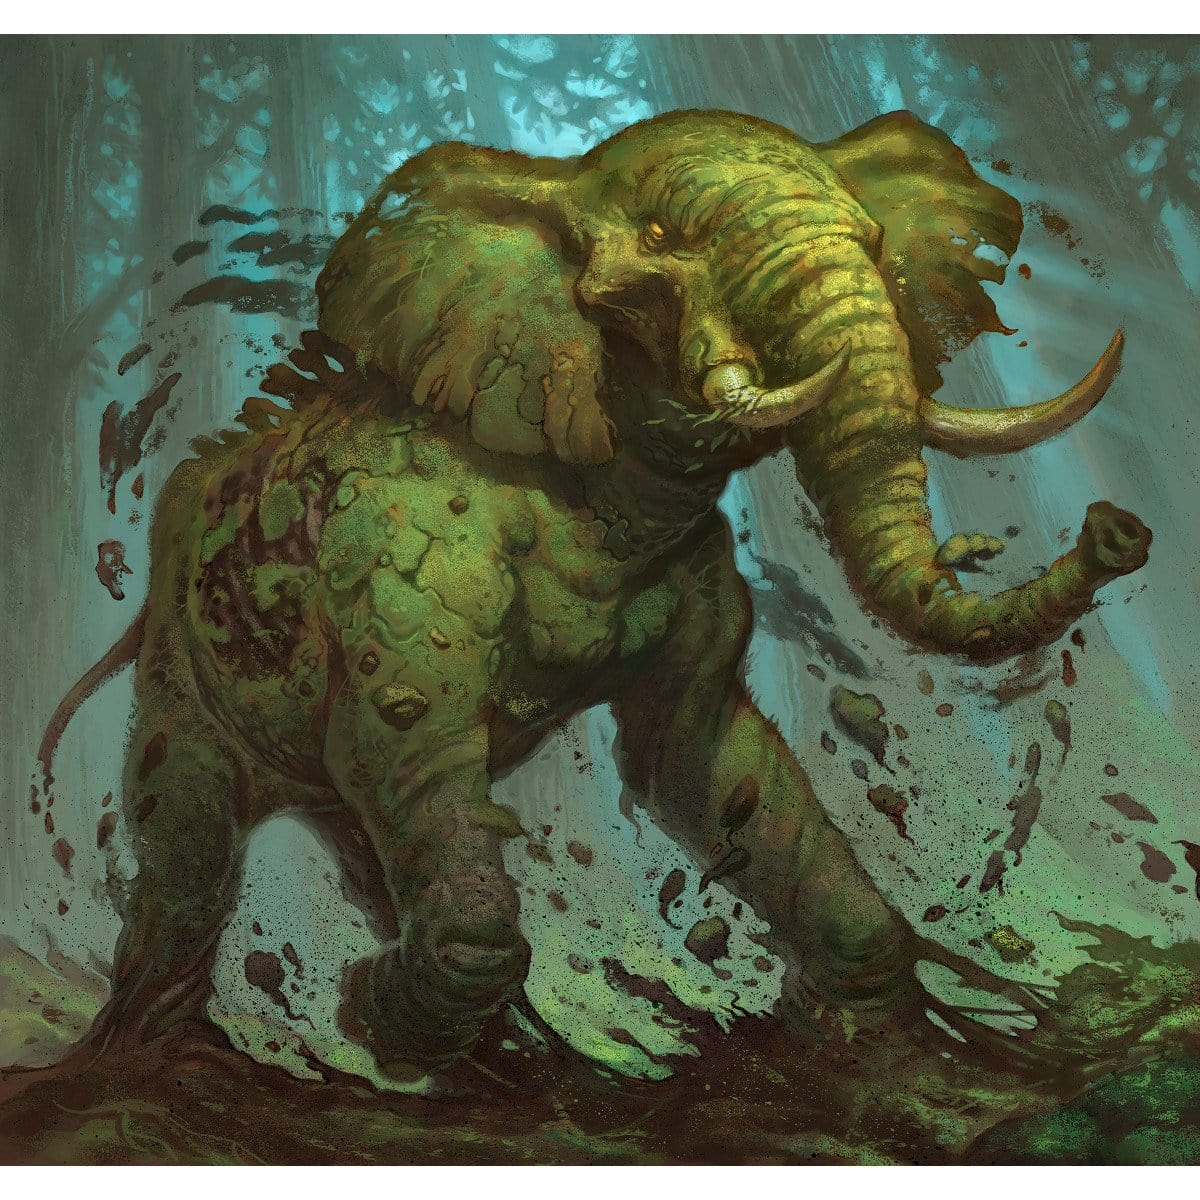 Elephant Token Print - Print - Original Magic Art - Accessories for Magic the Gathering and other card games